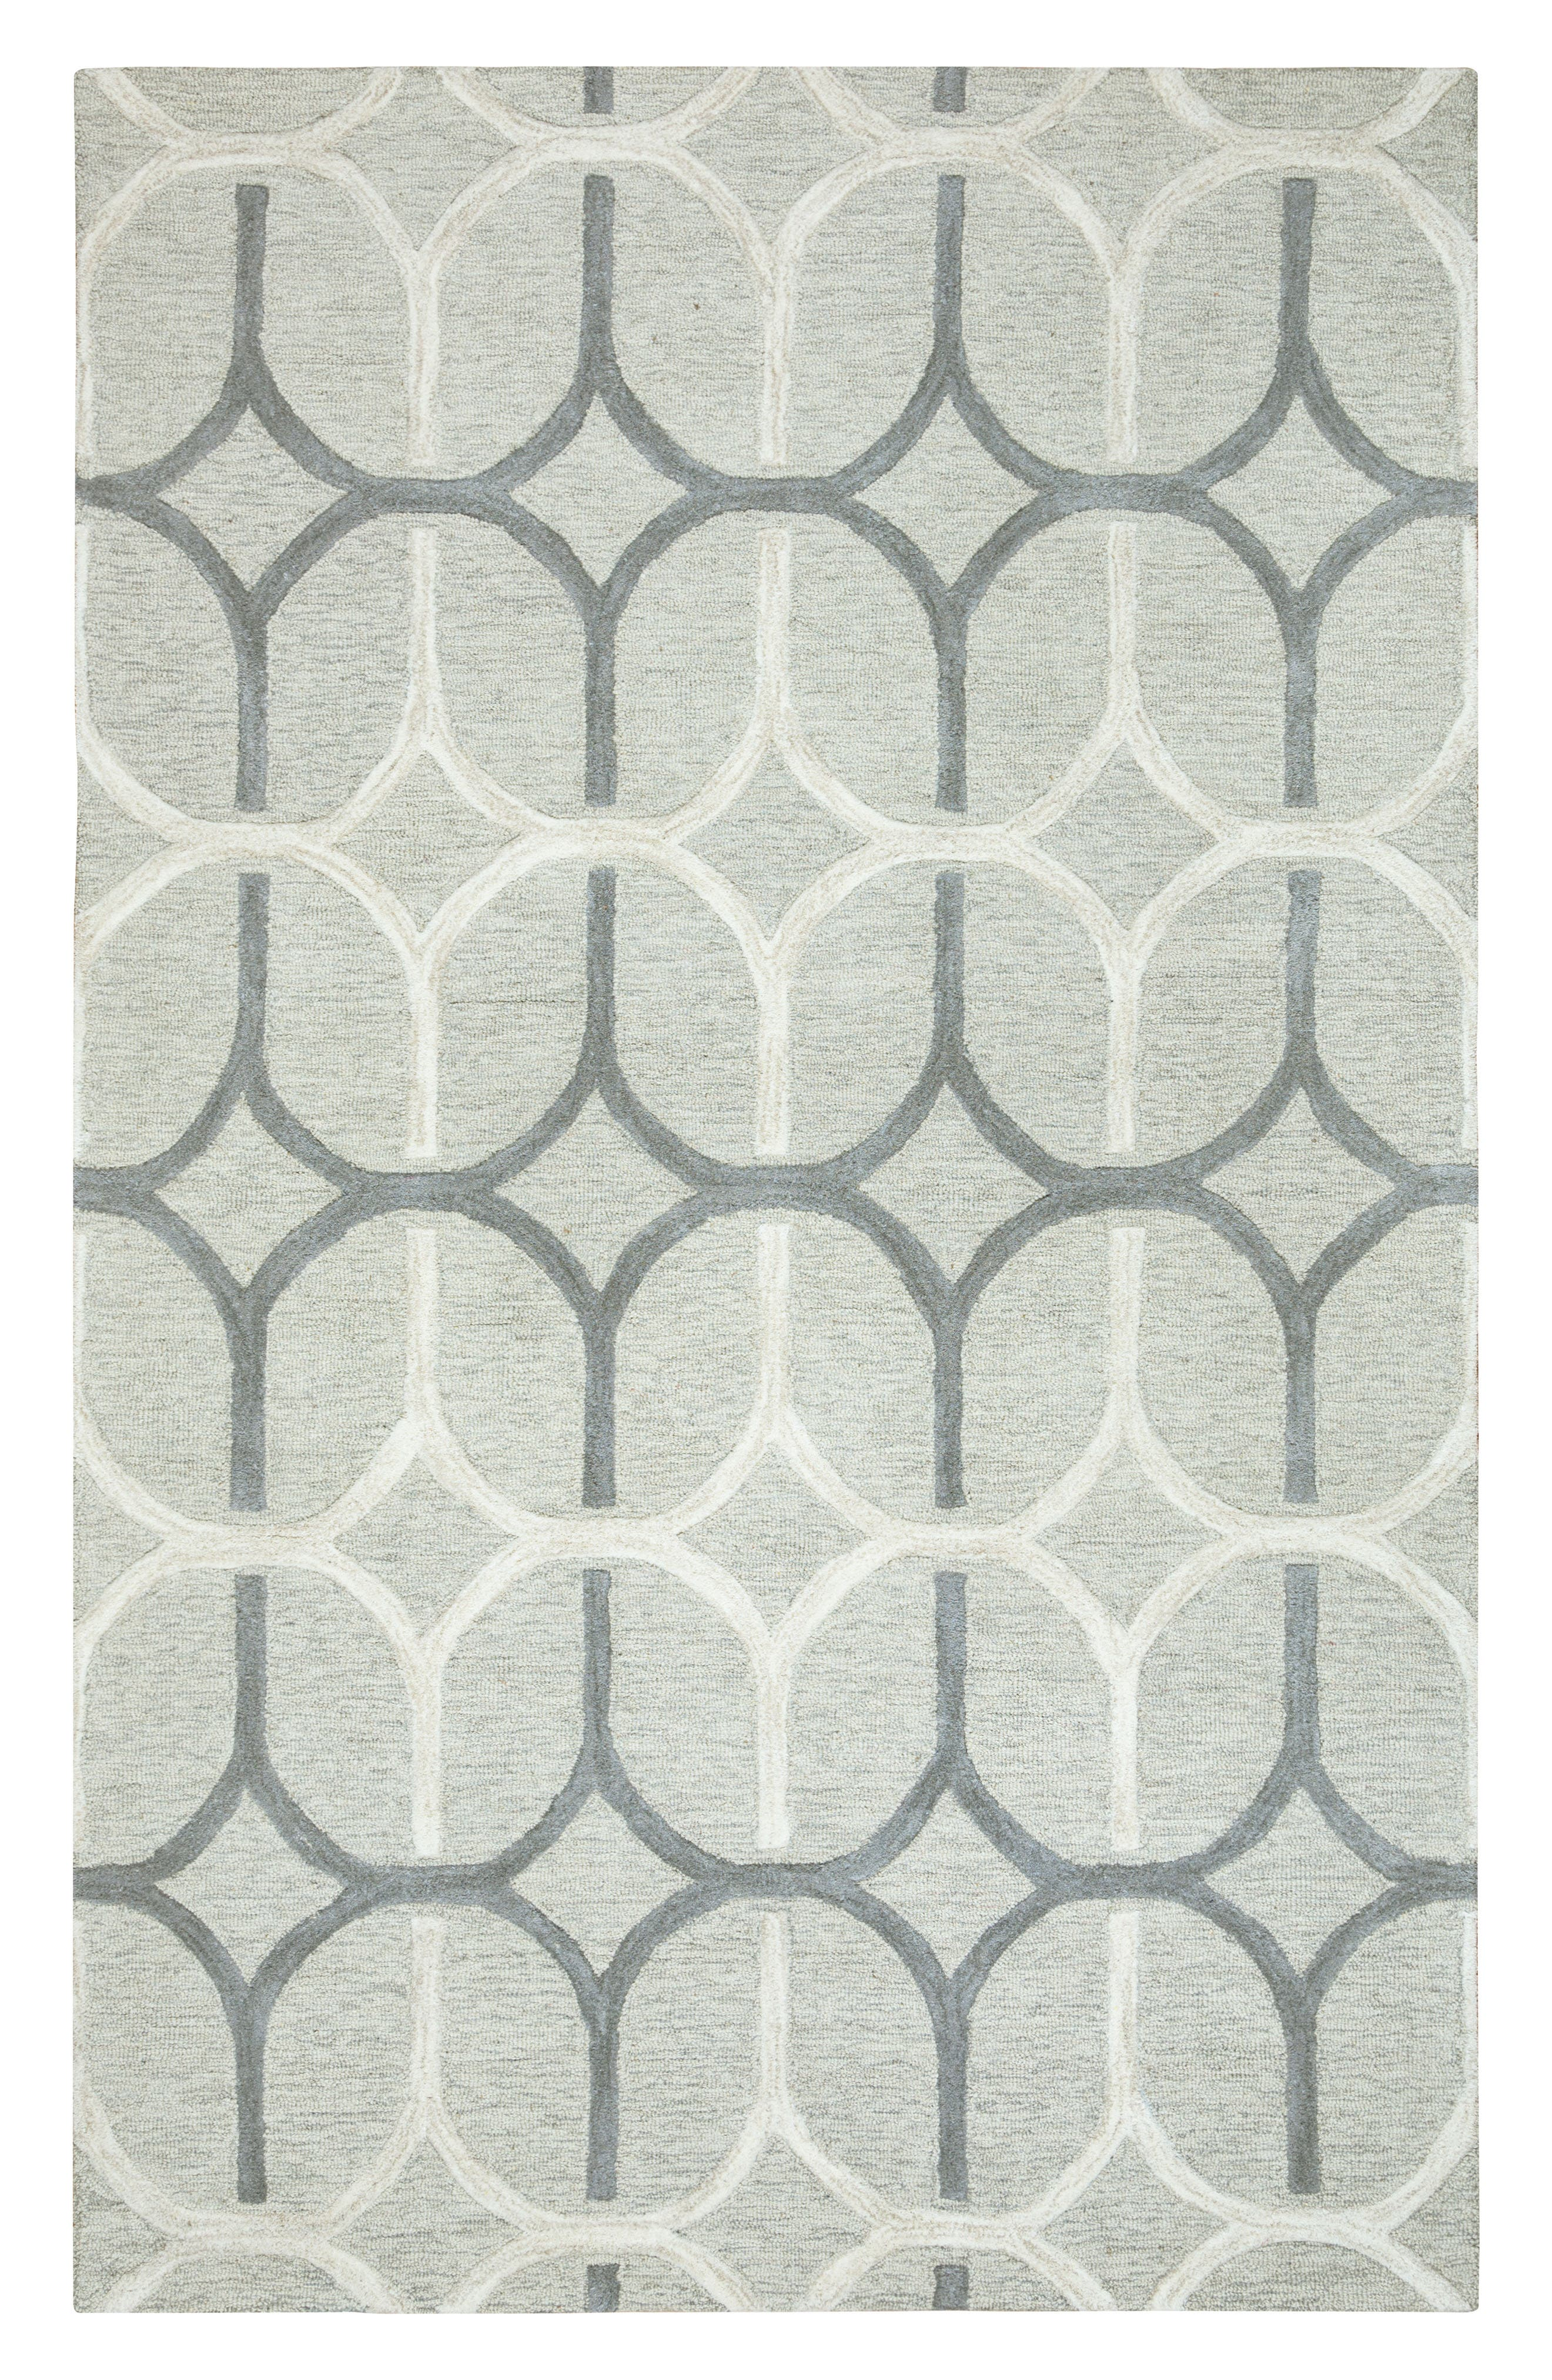 'Caterine Ovals' Hand Tufted Wool Area Rug,                             Main thumbnail 1, color,                             020